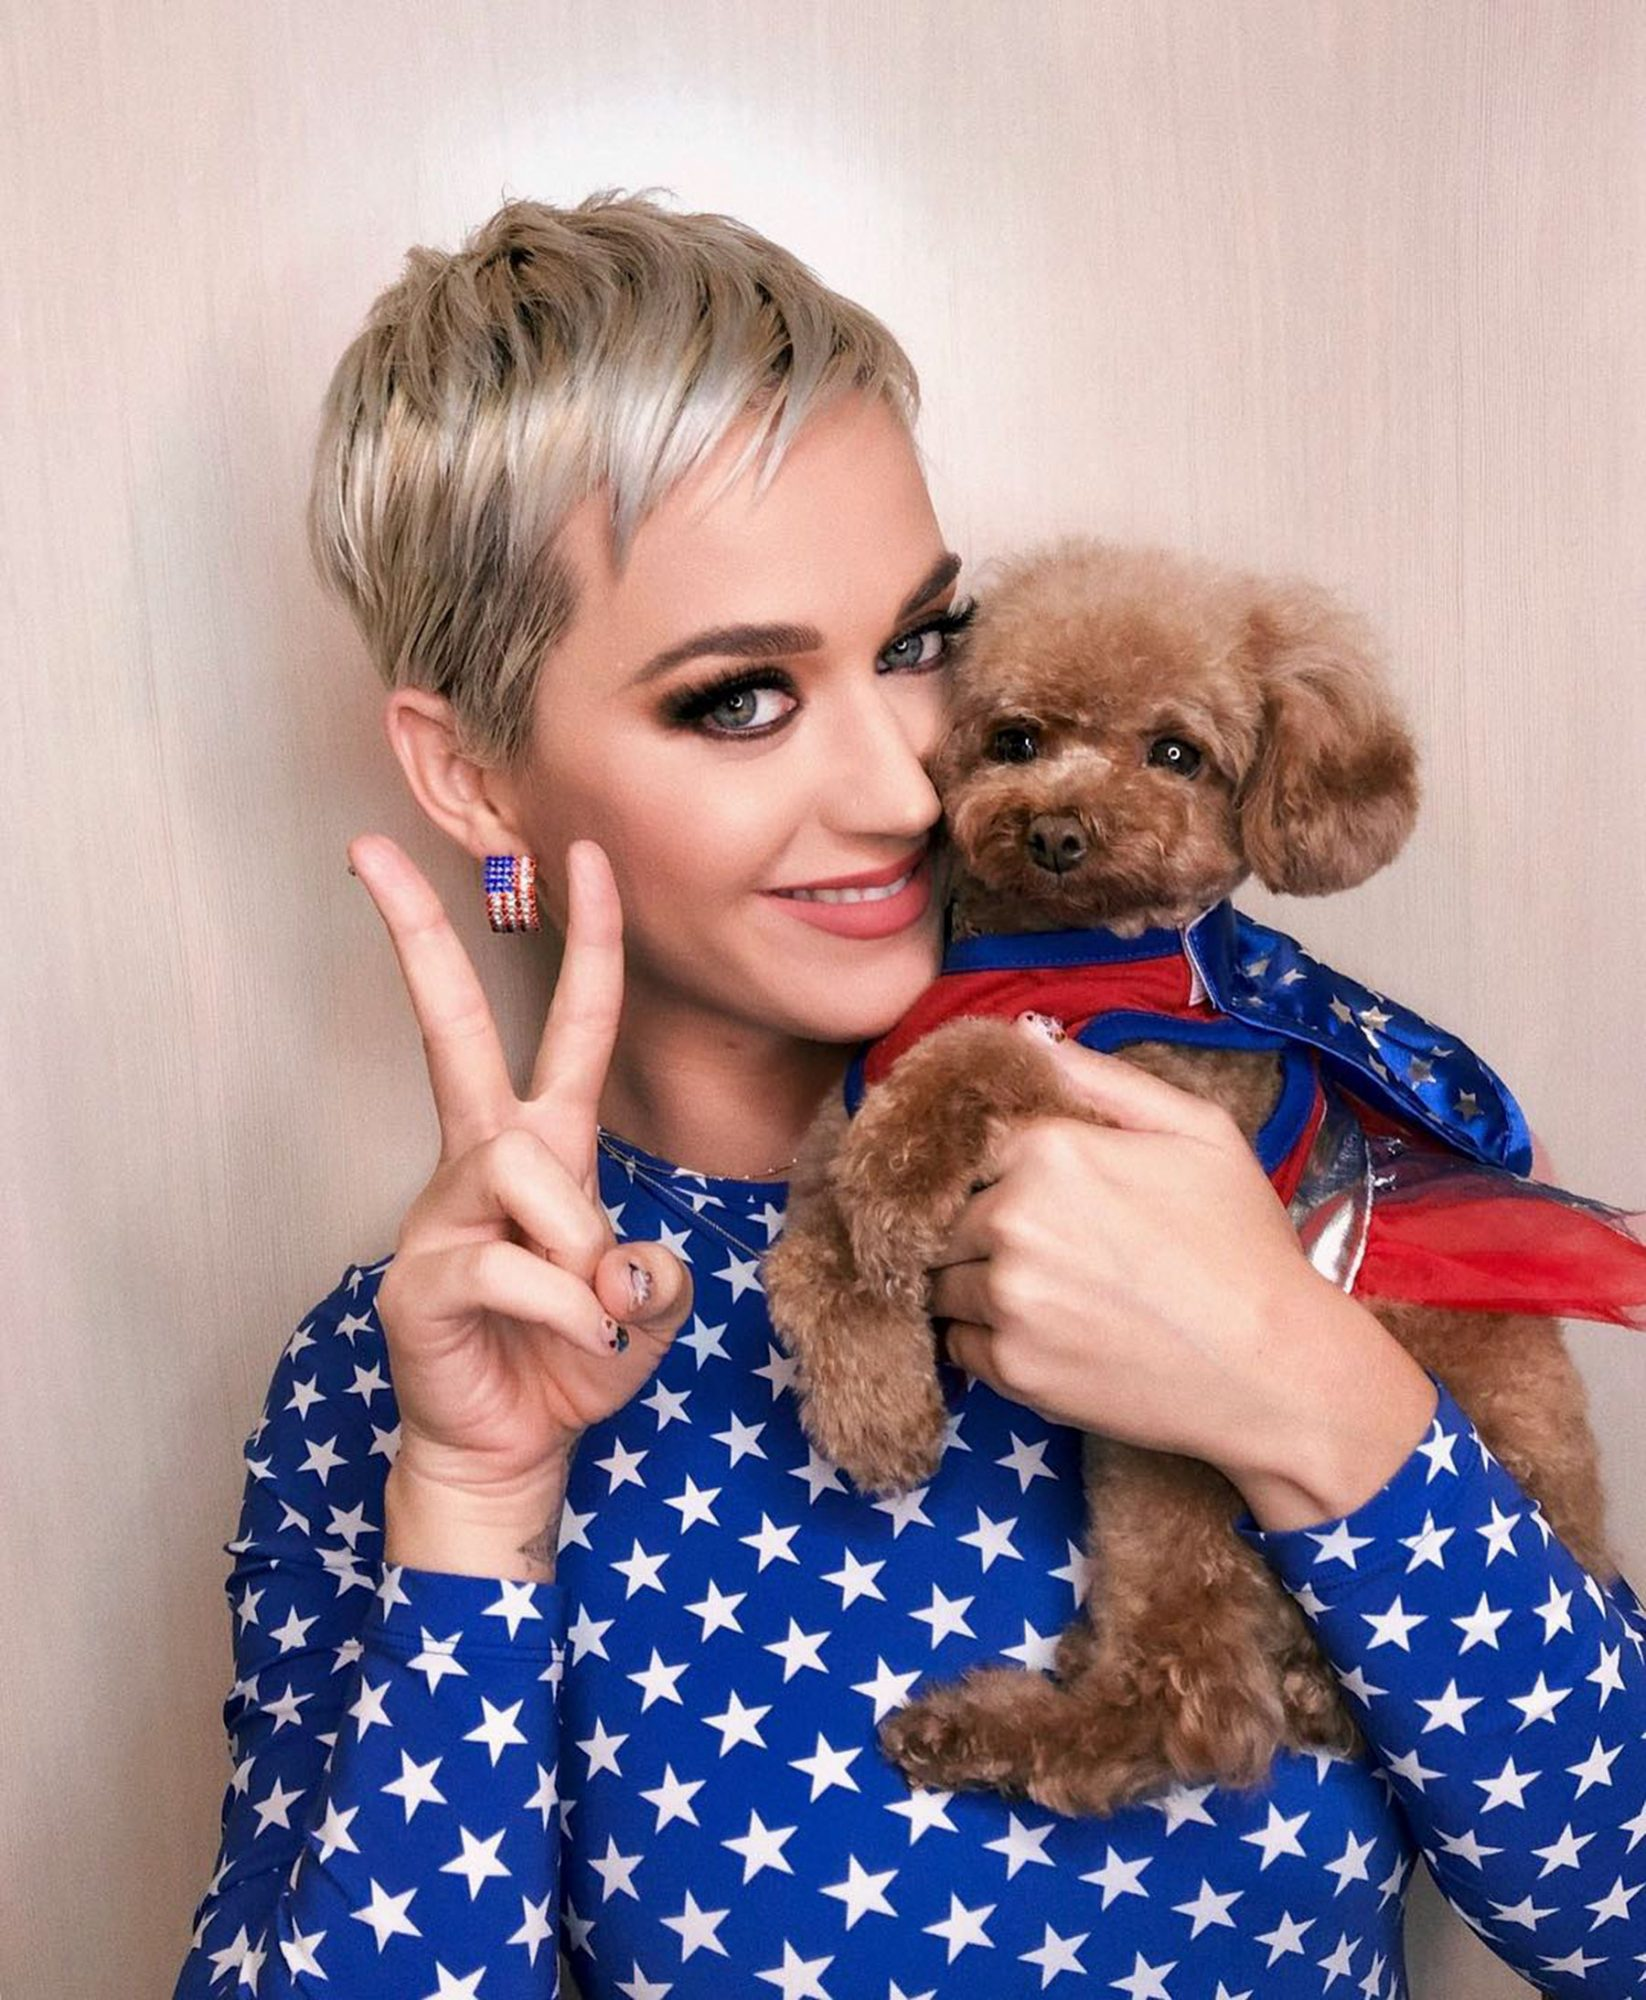 Katy Perryhttps://www.instagram.com/p/Bp2GALLERY: Election Day Celebs5J-GnjYK/CR: Katy Perry/Instagram